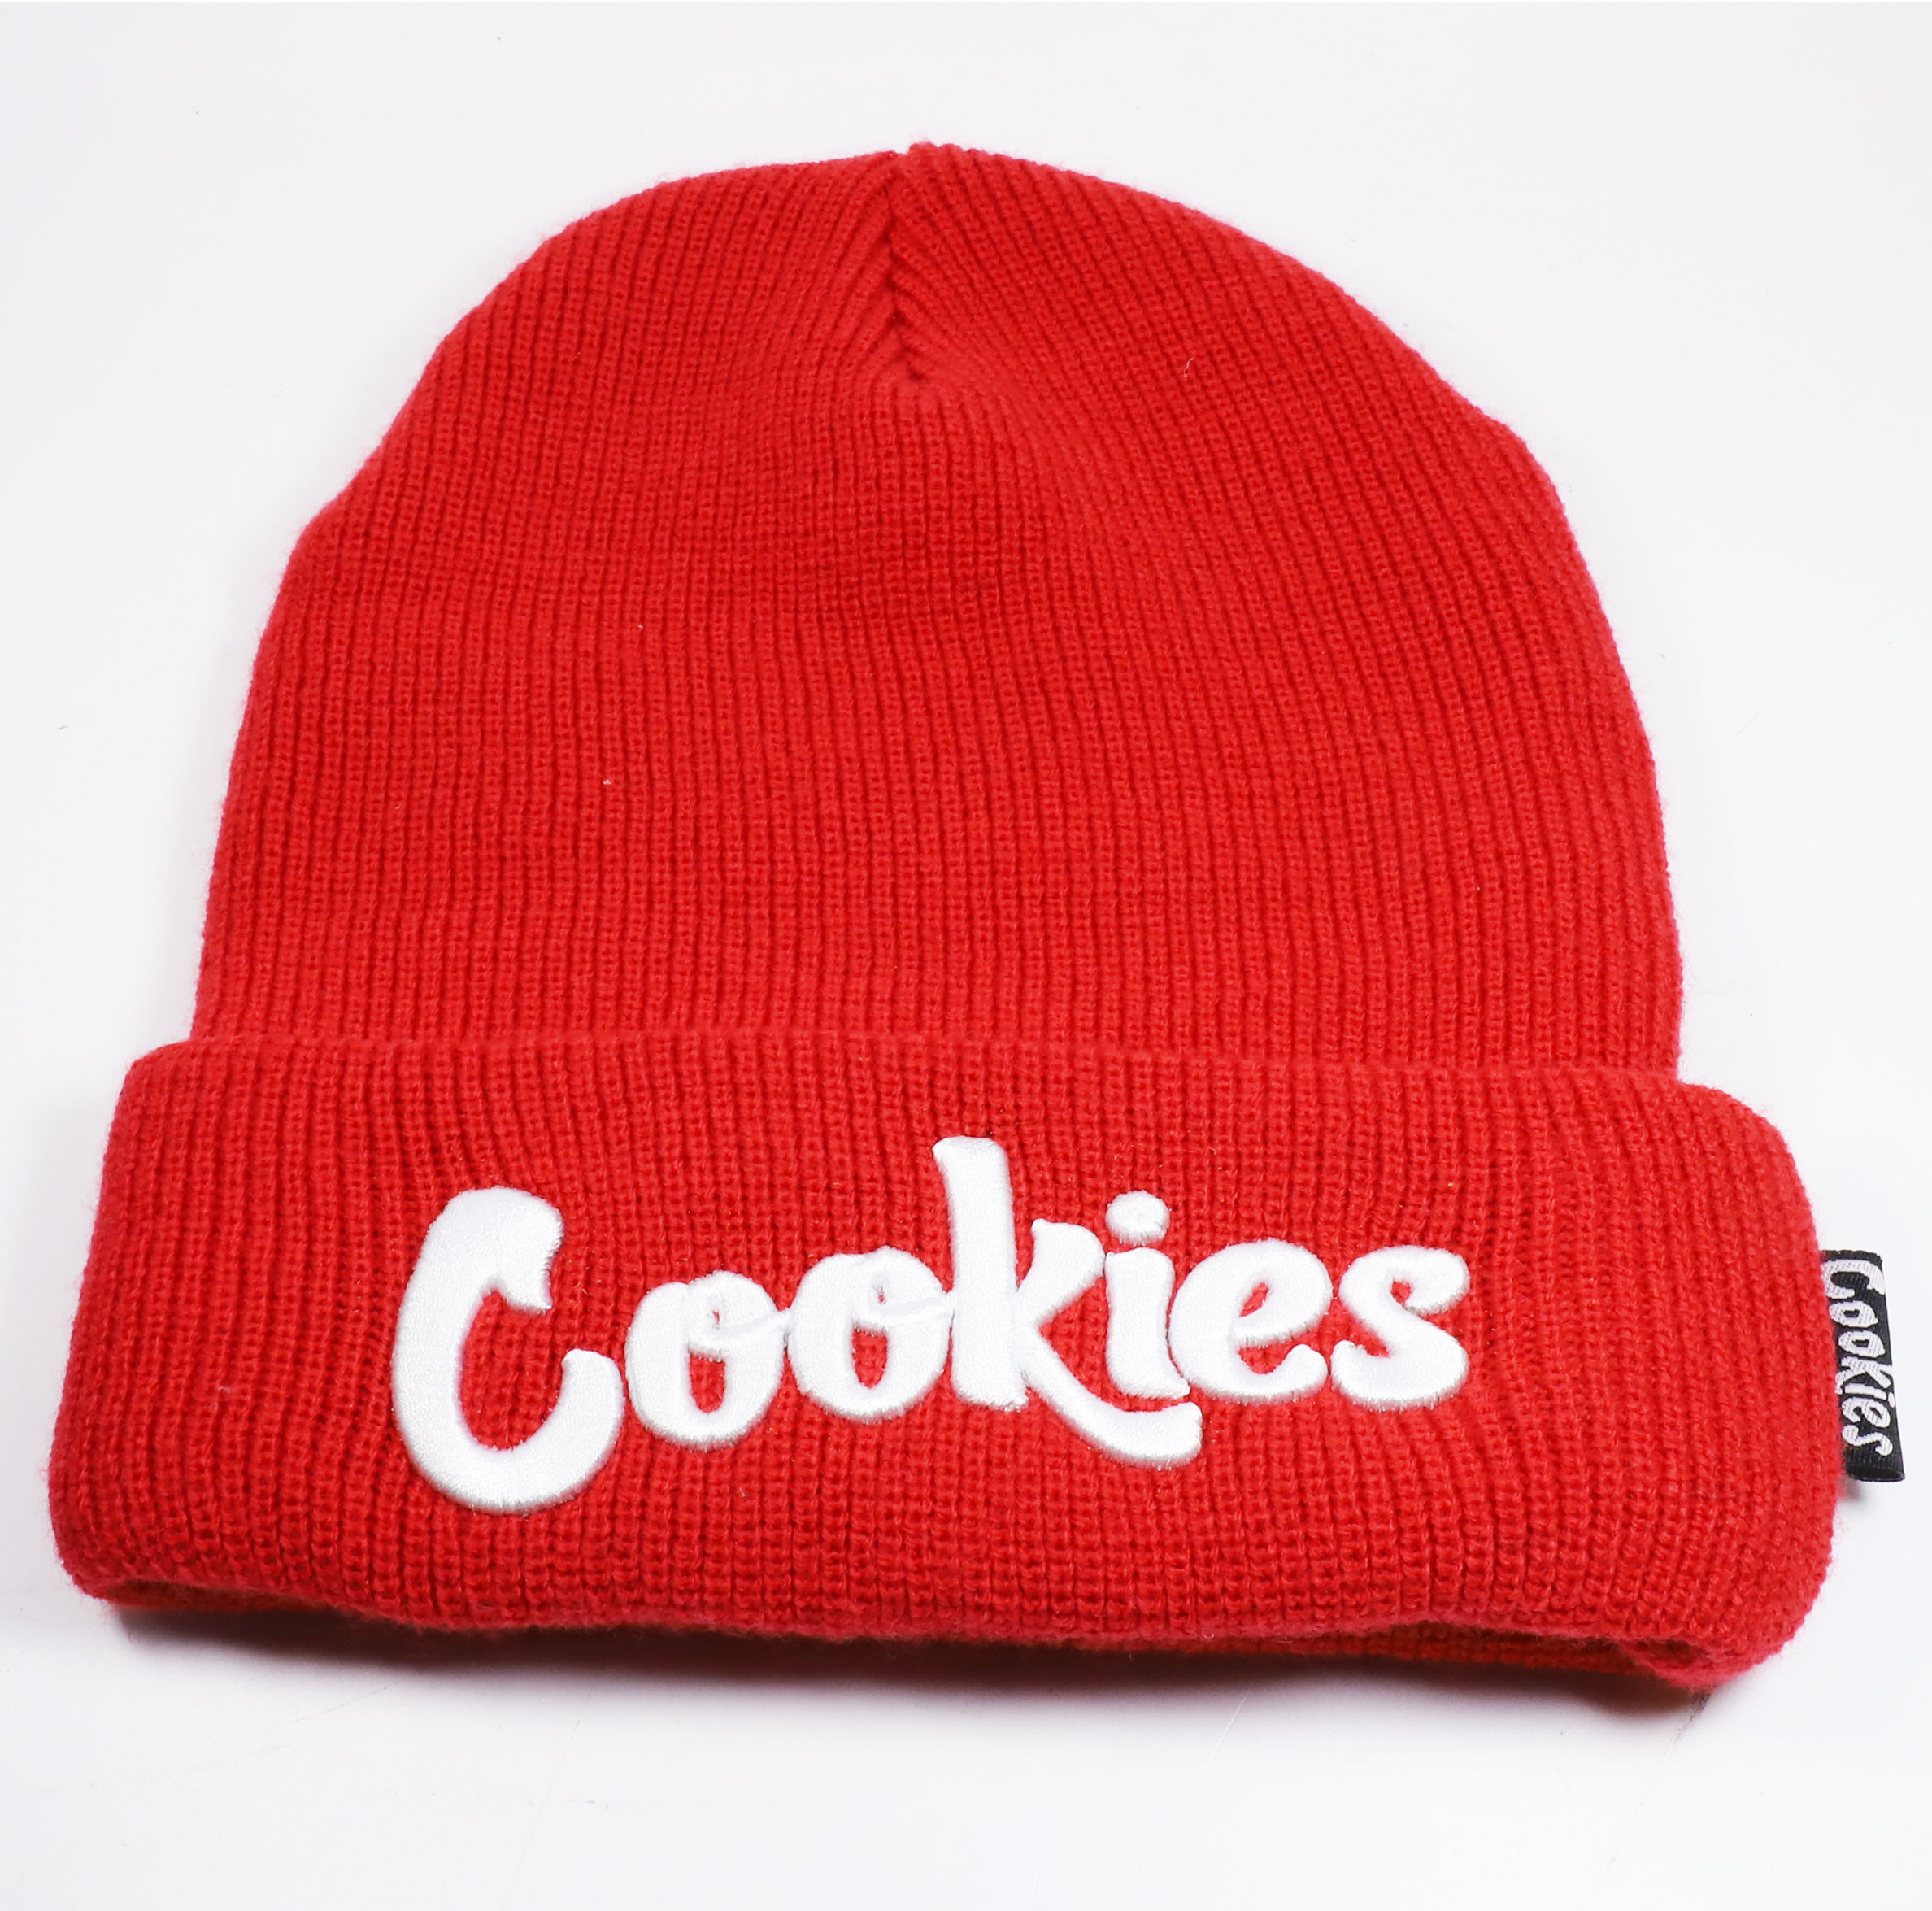 Custom High Quality Red Acrylic Beanie With Embroidery Logo Knit Beanie Hat